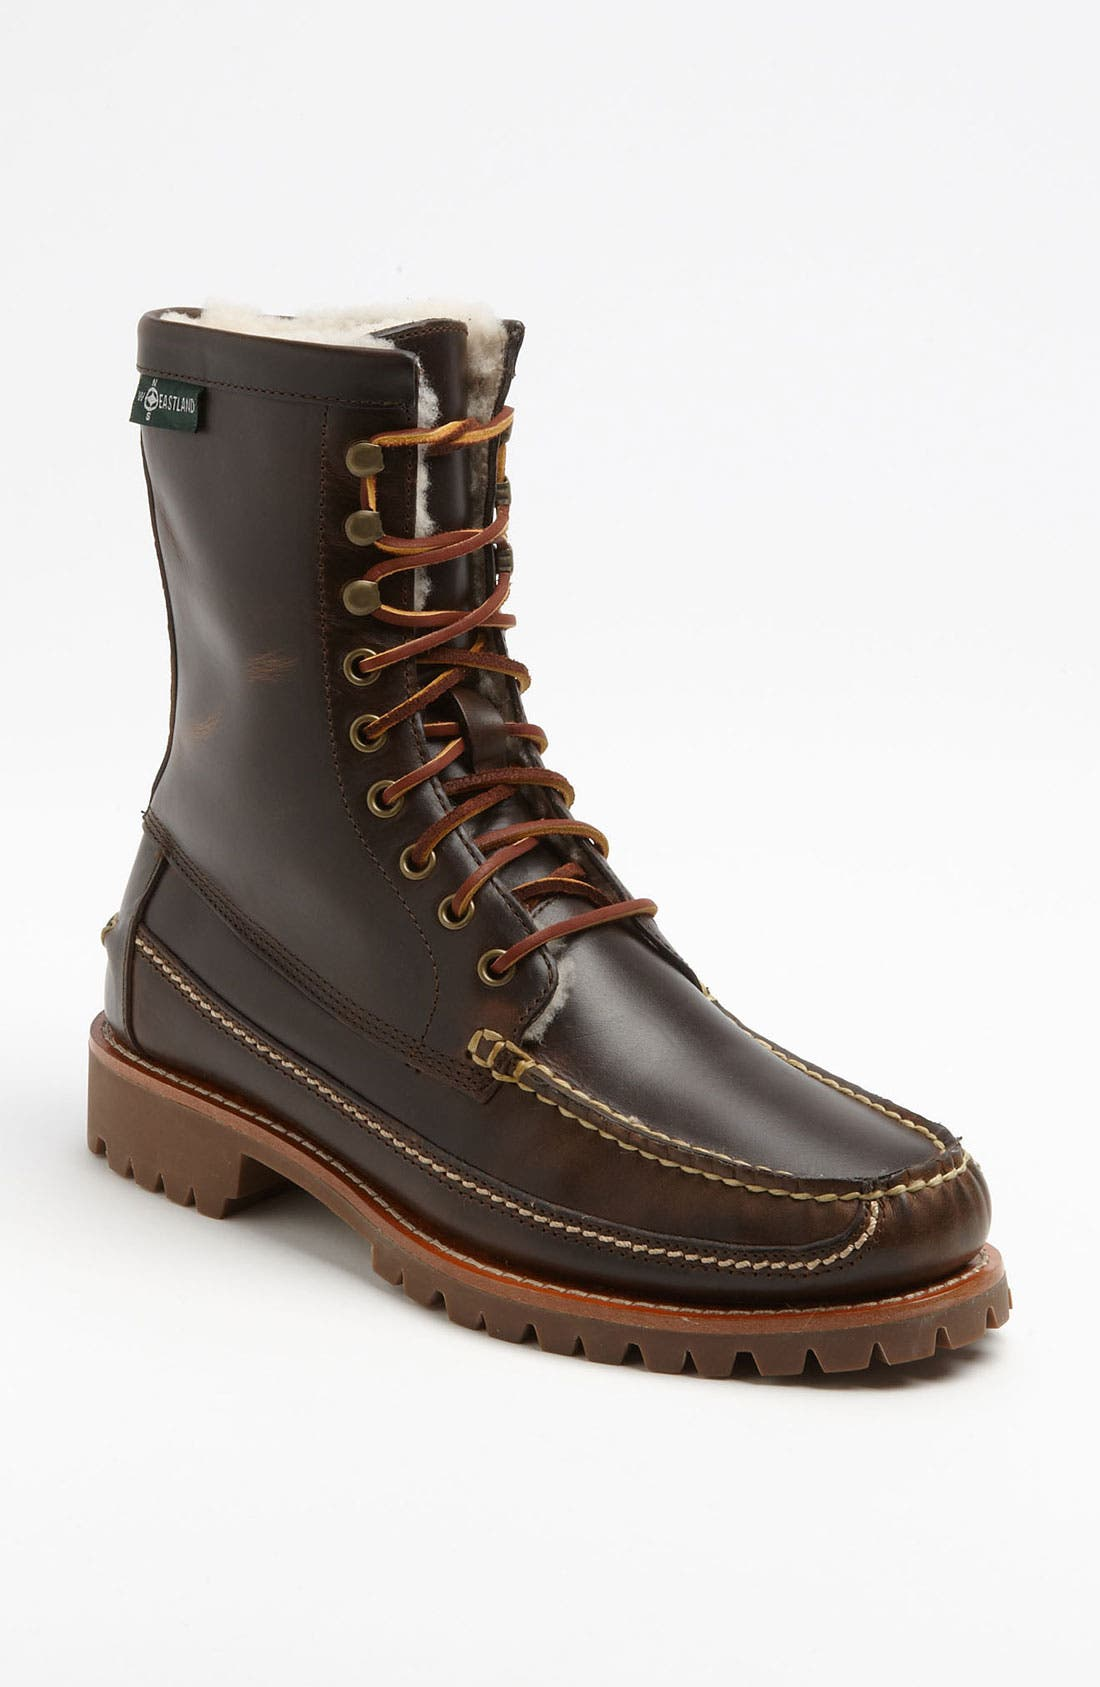 Alternate Image 1 Selected - Eastland 'Baxter 1955' Moc Toe Boot